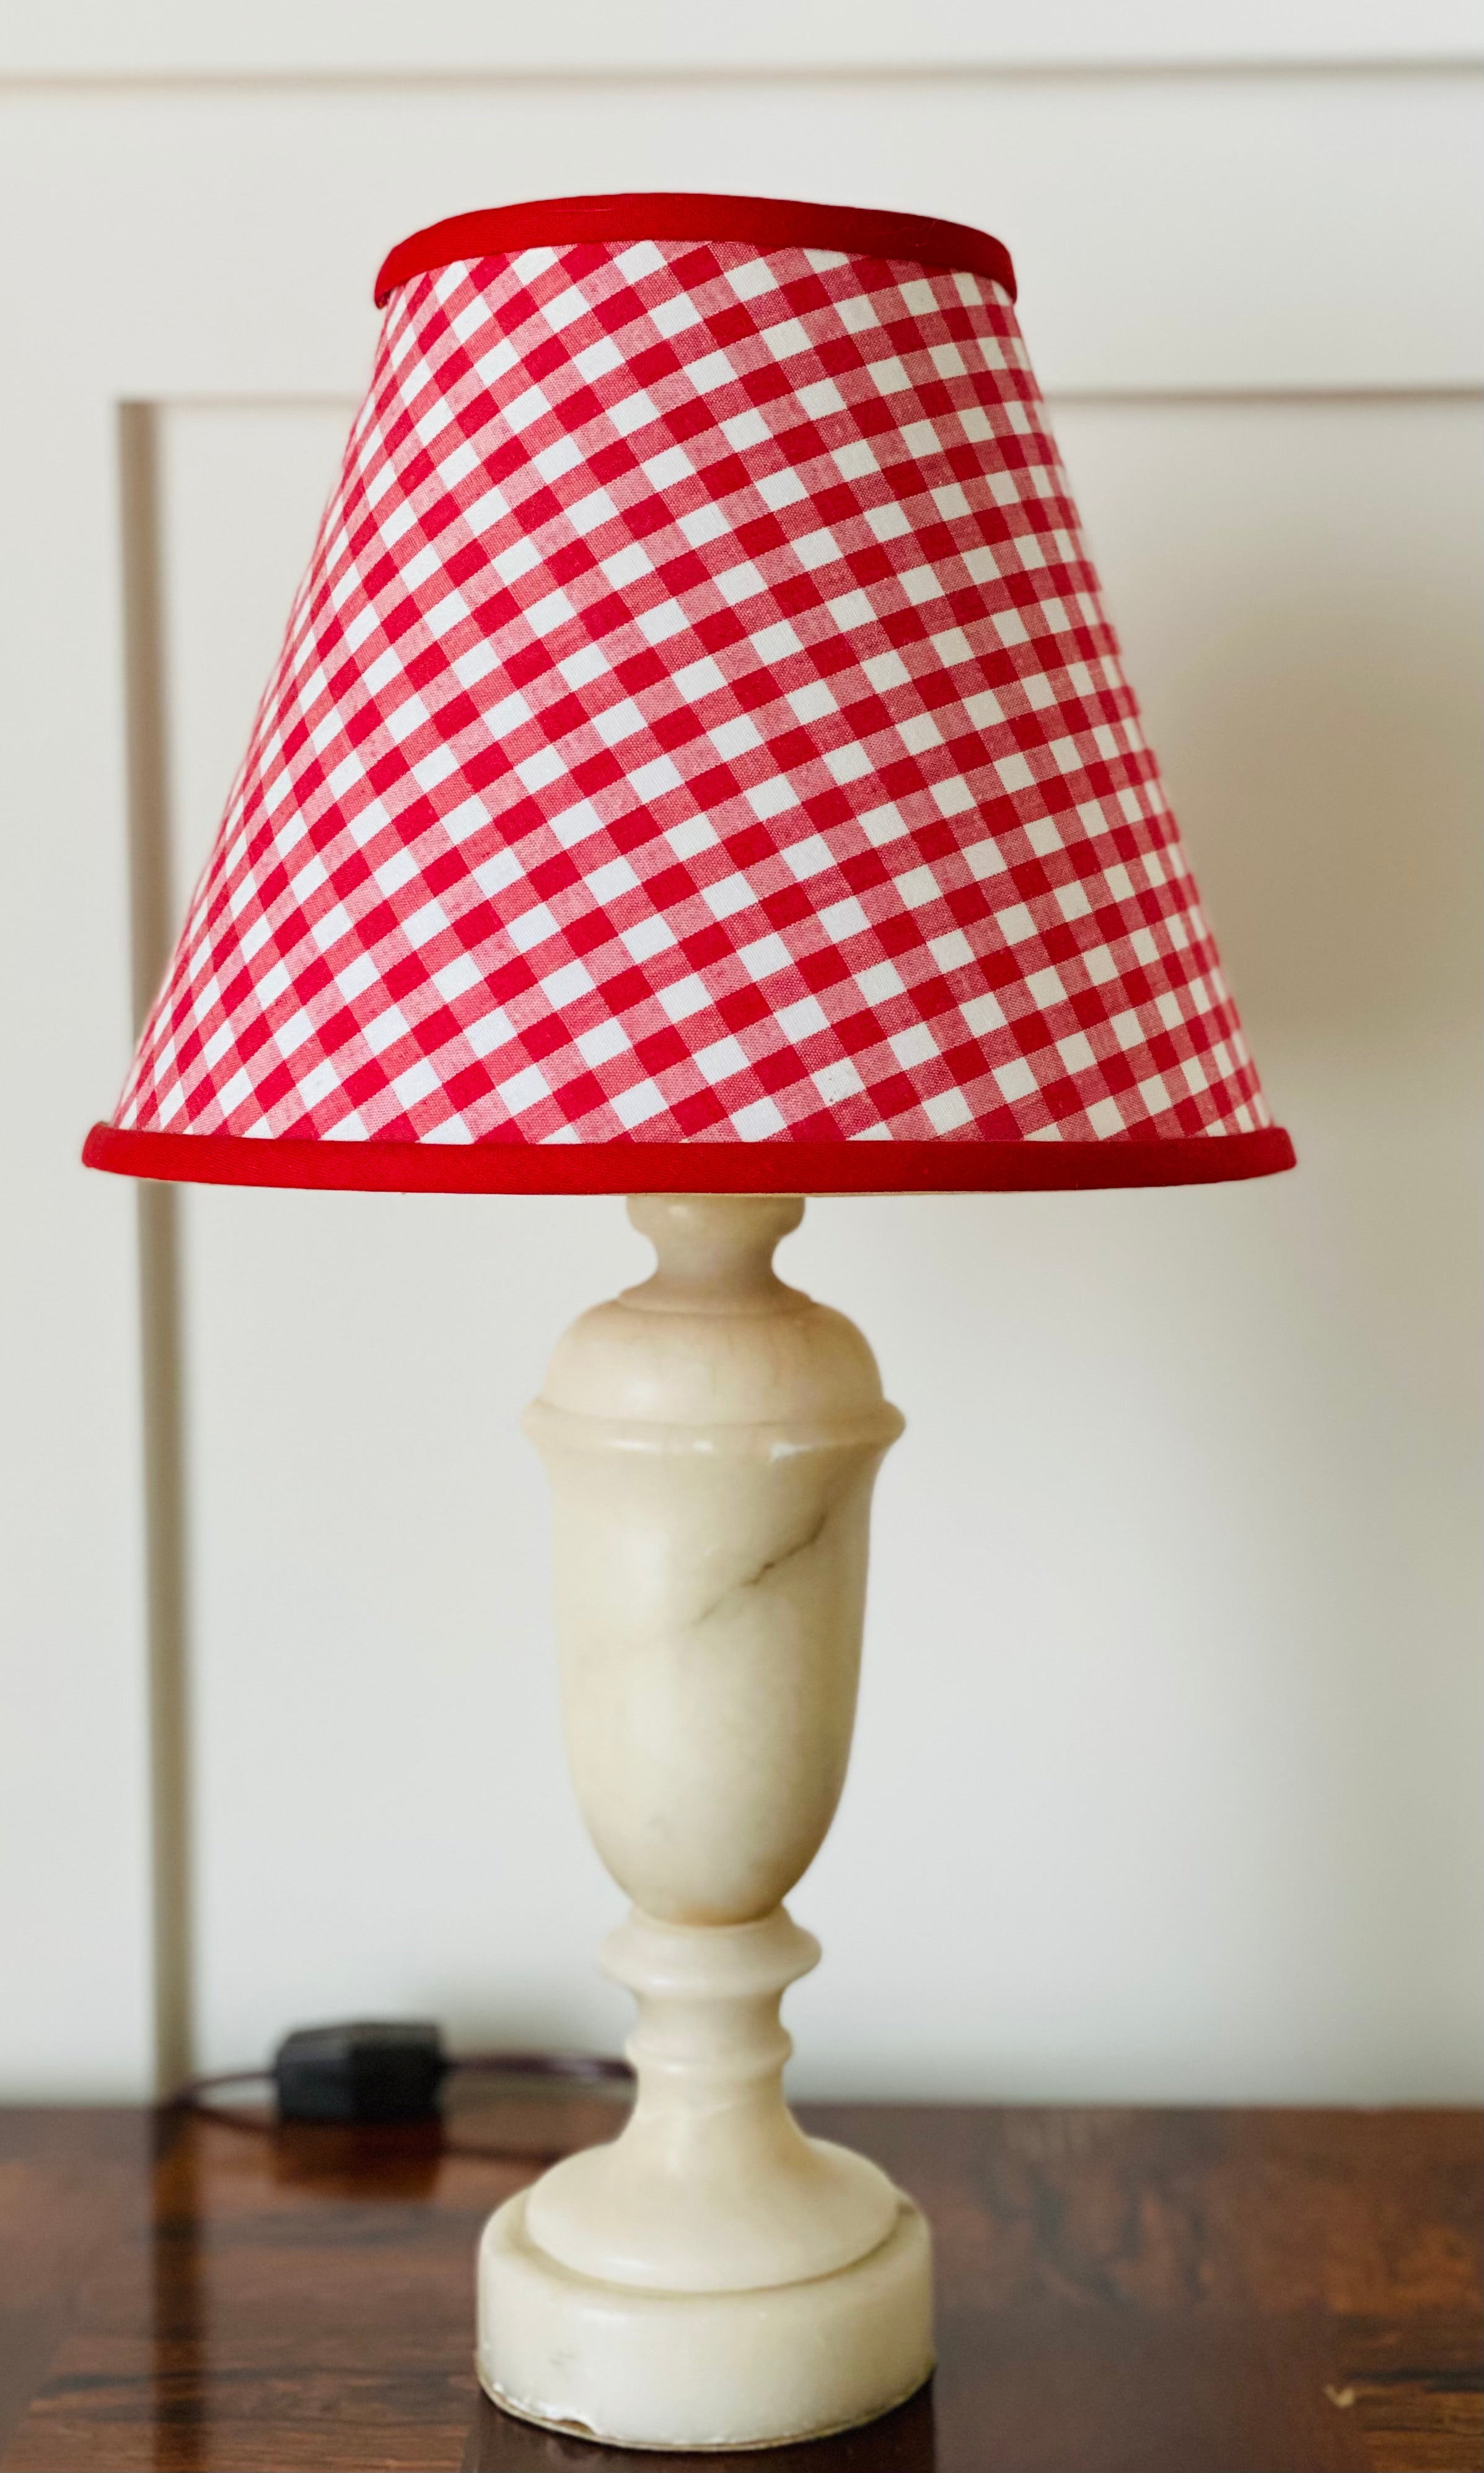 Vintage Marble Urn Table Lamp with Red Gingham Shade